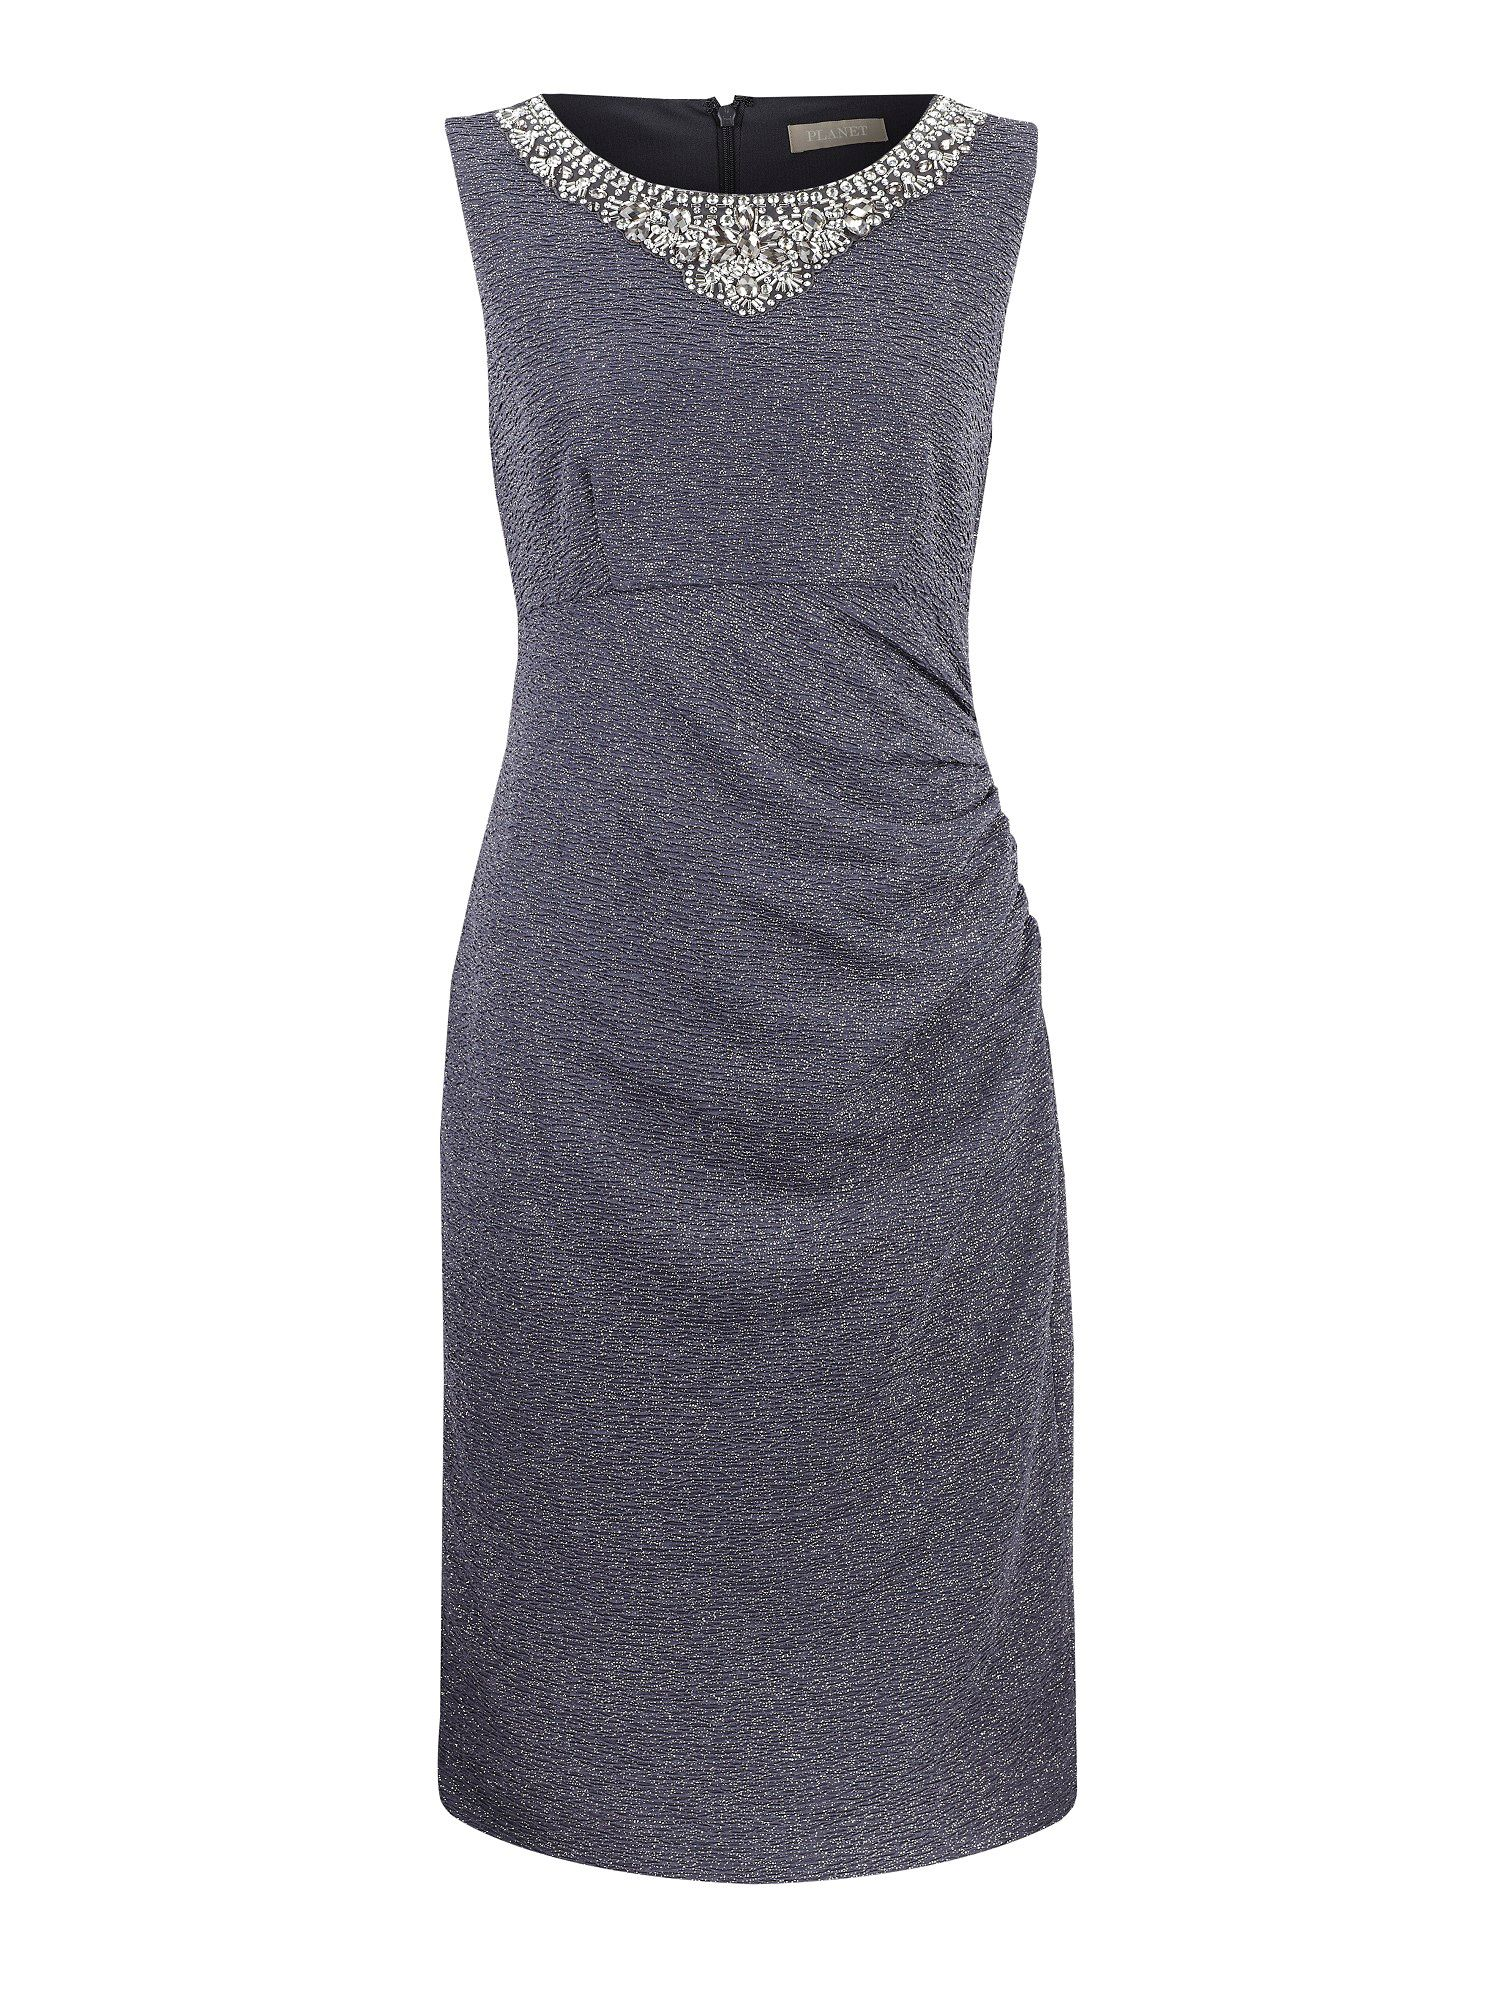 Charcoal embellished neckline dress